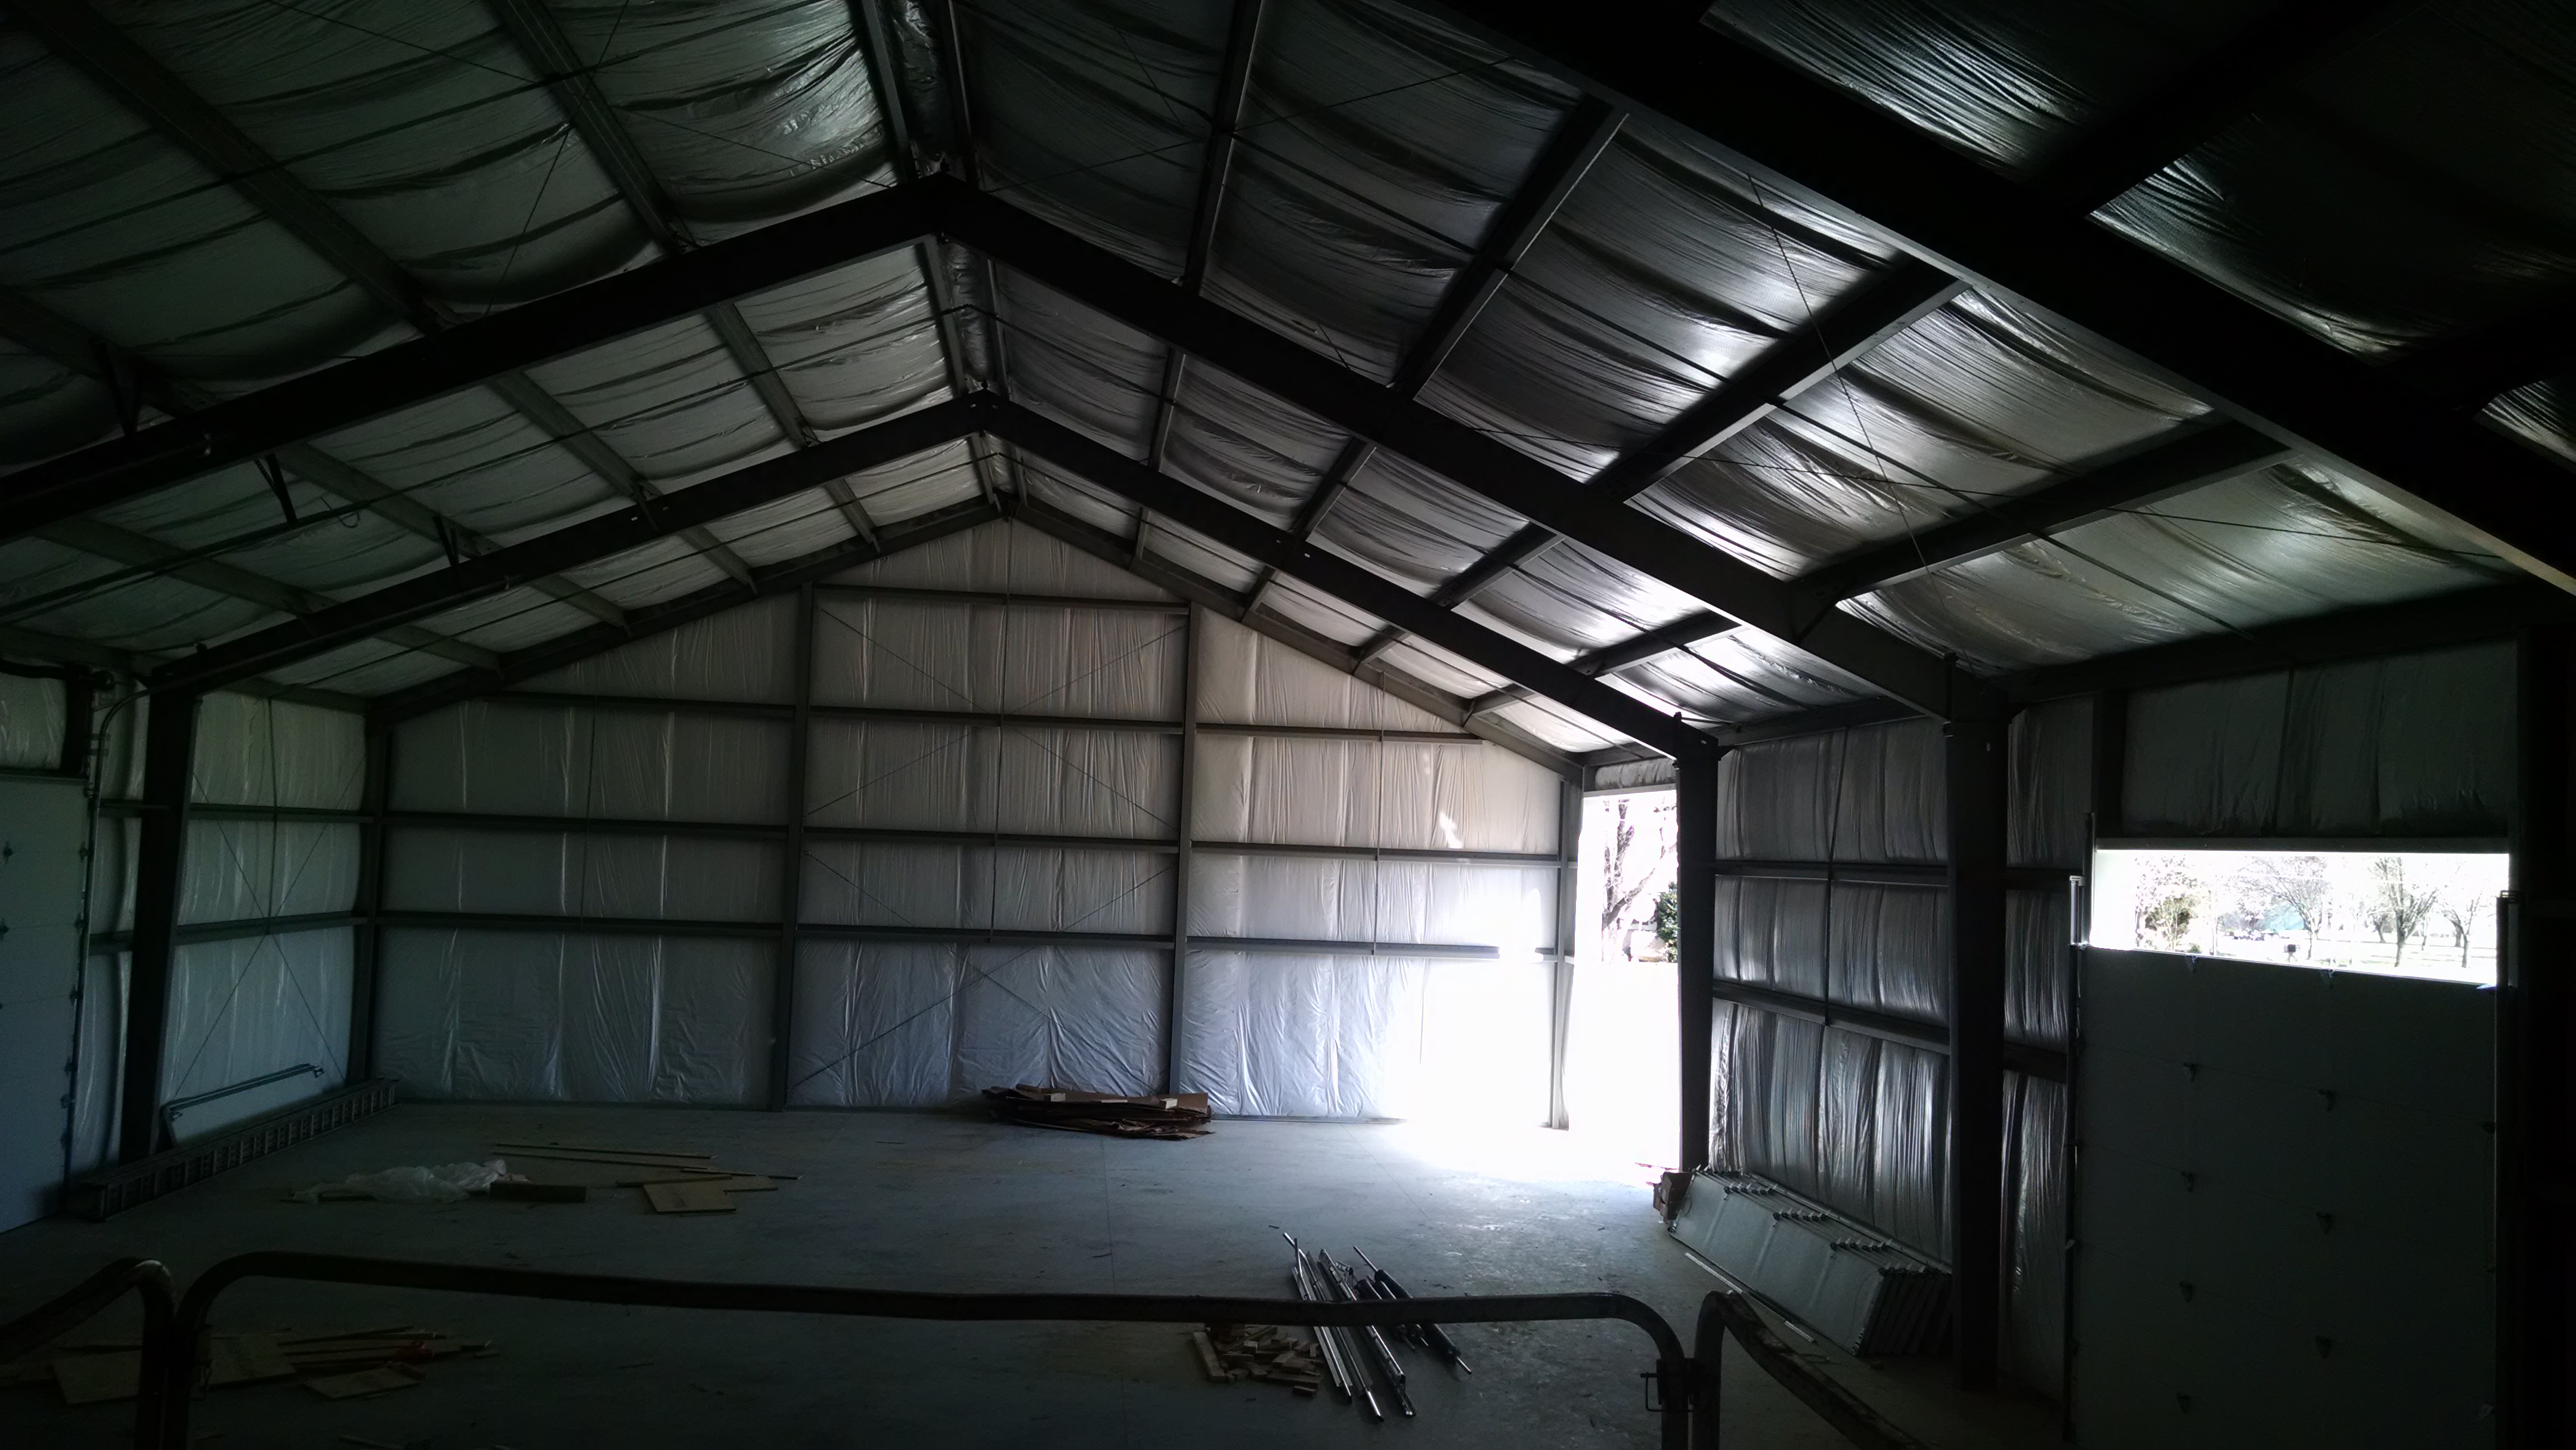 Insulated Interior of Metal Building